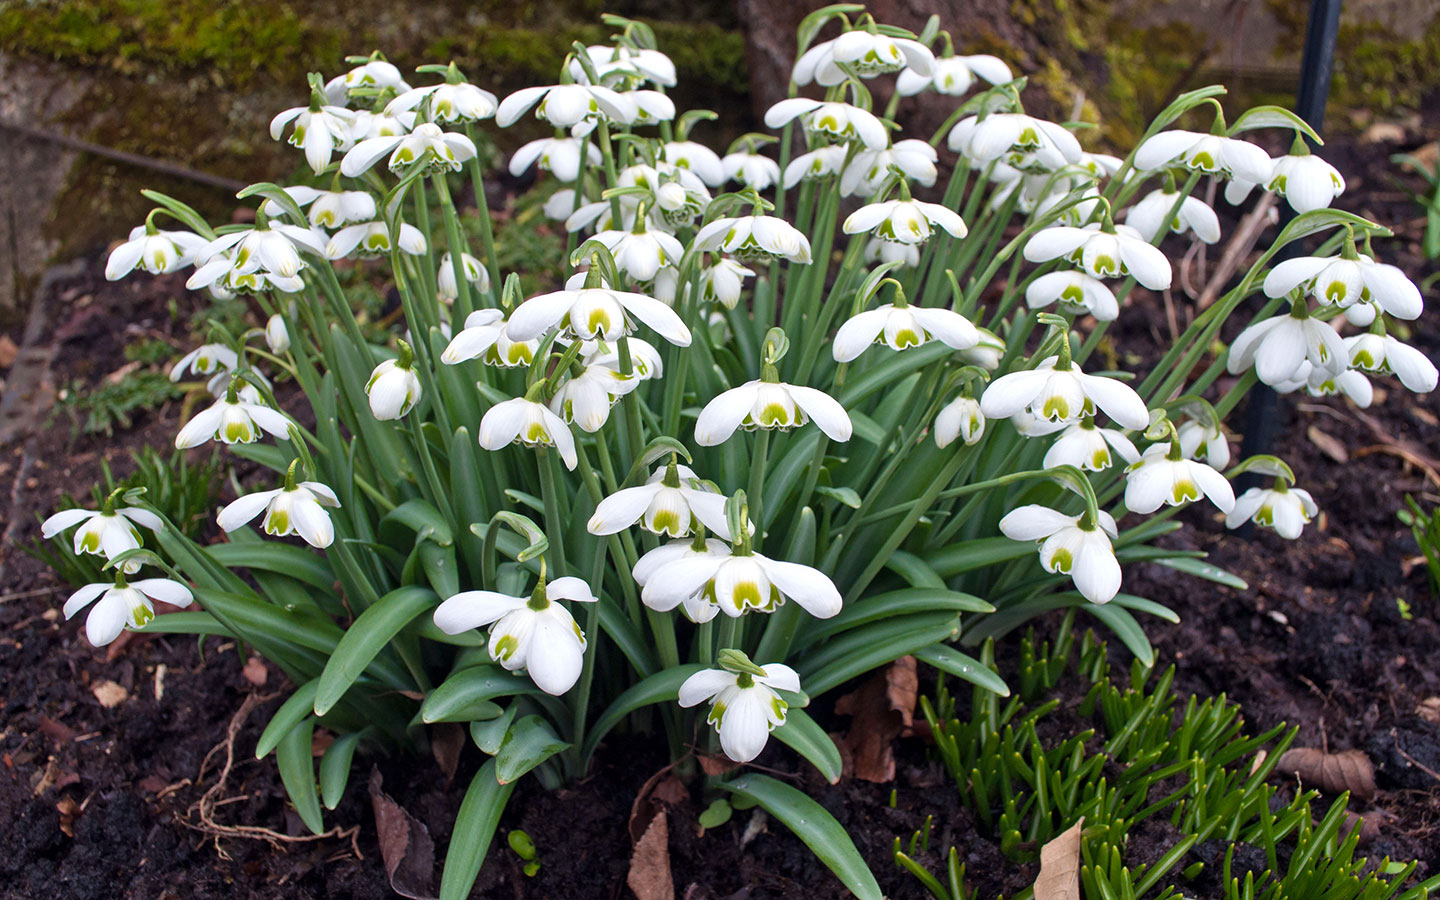 Unusual varieties of snowdrop